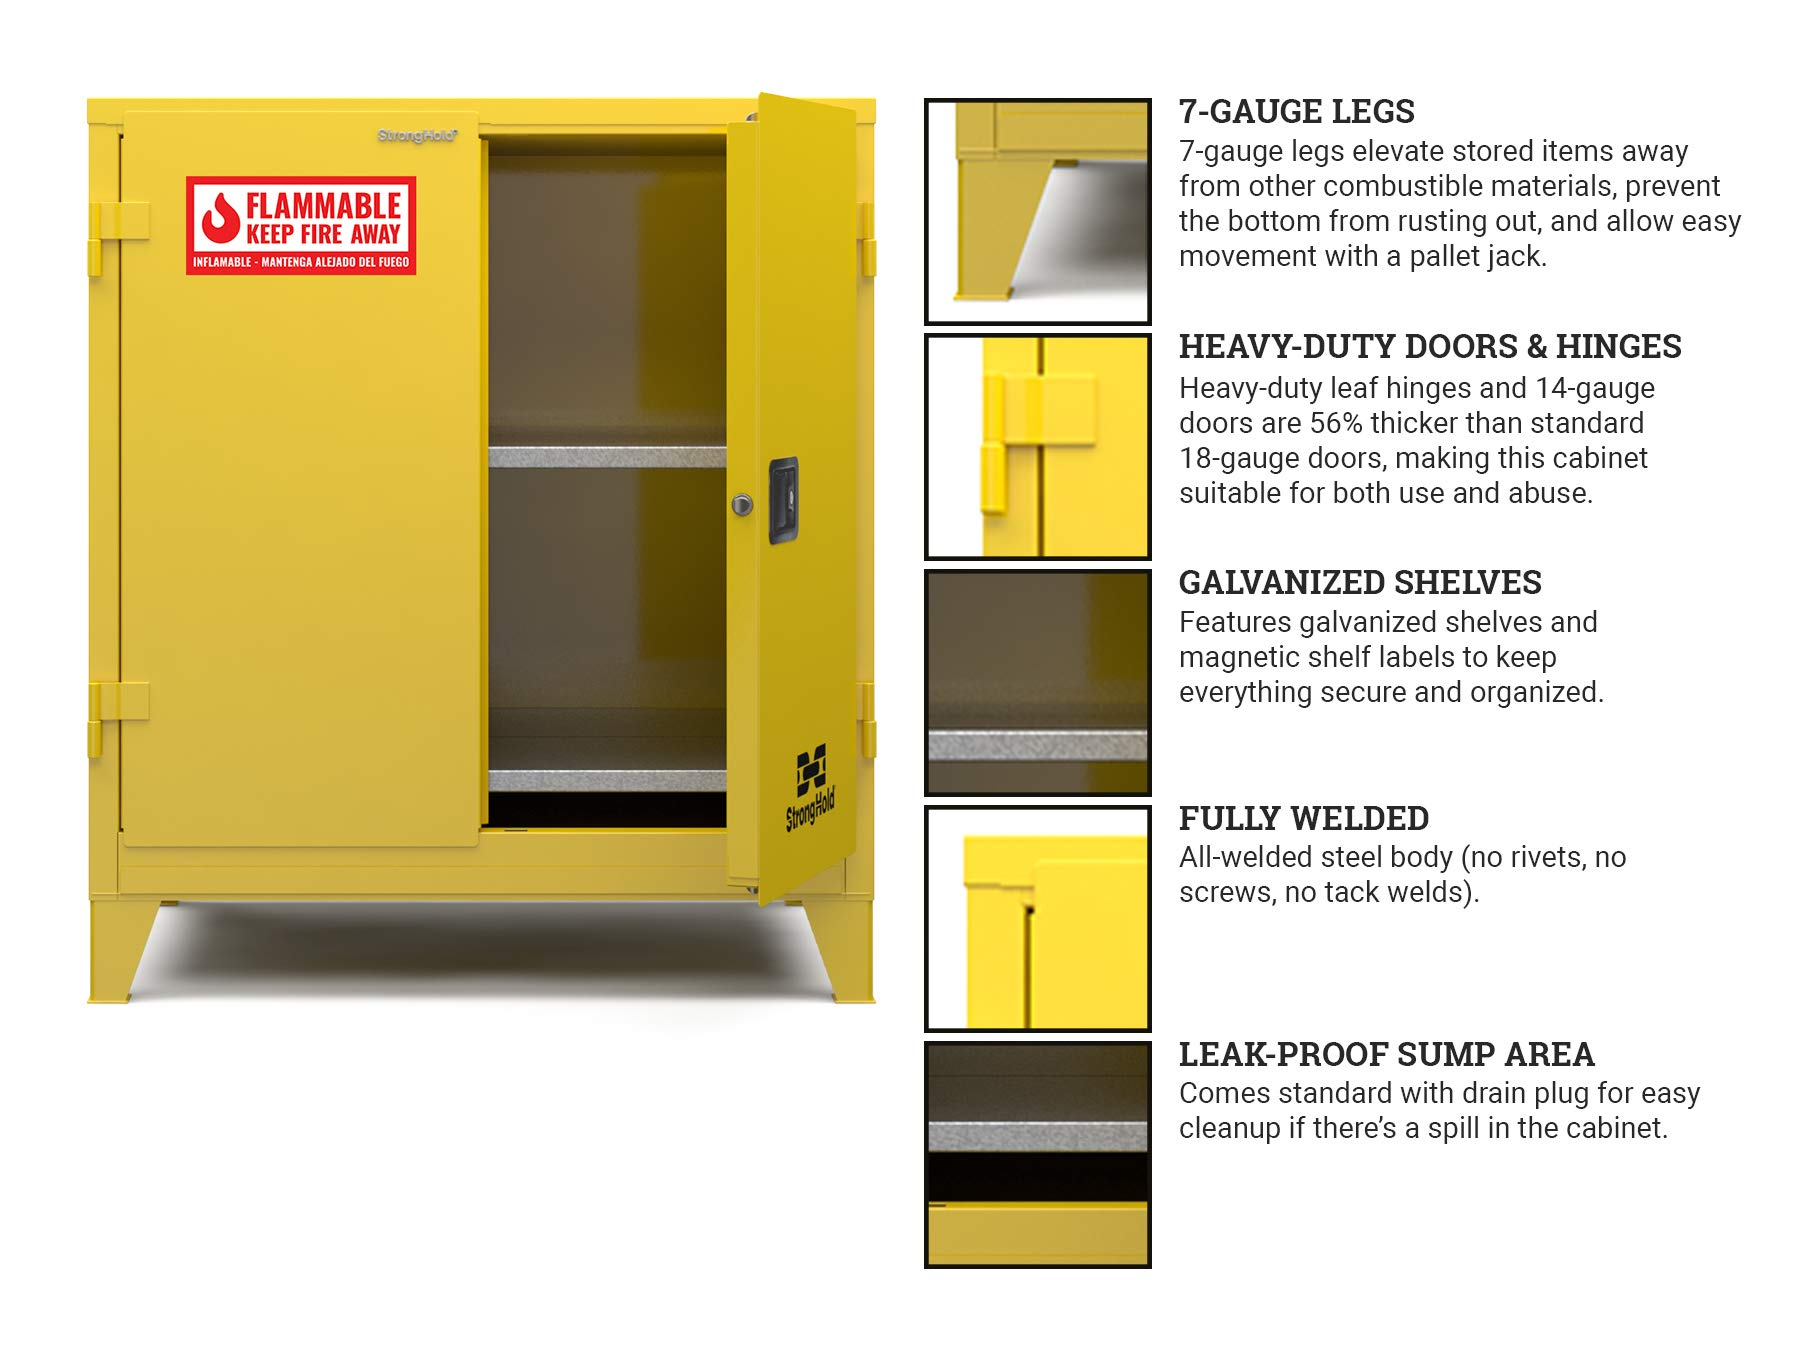 """Strong Hold-Heavy-Duty Doors and Hinges, 2 Shelves, 4 Magnetic Shelf Labels, Heavy-Duty 6"""" Legs, 15-Yr Warranty, Safety Cabinet-Flammable, 43""""W x 34""""D X 50""""H, Manual Close, 60-Gallon, NFPA, CAB000016"""